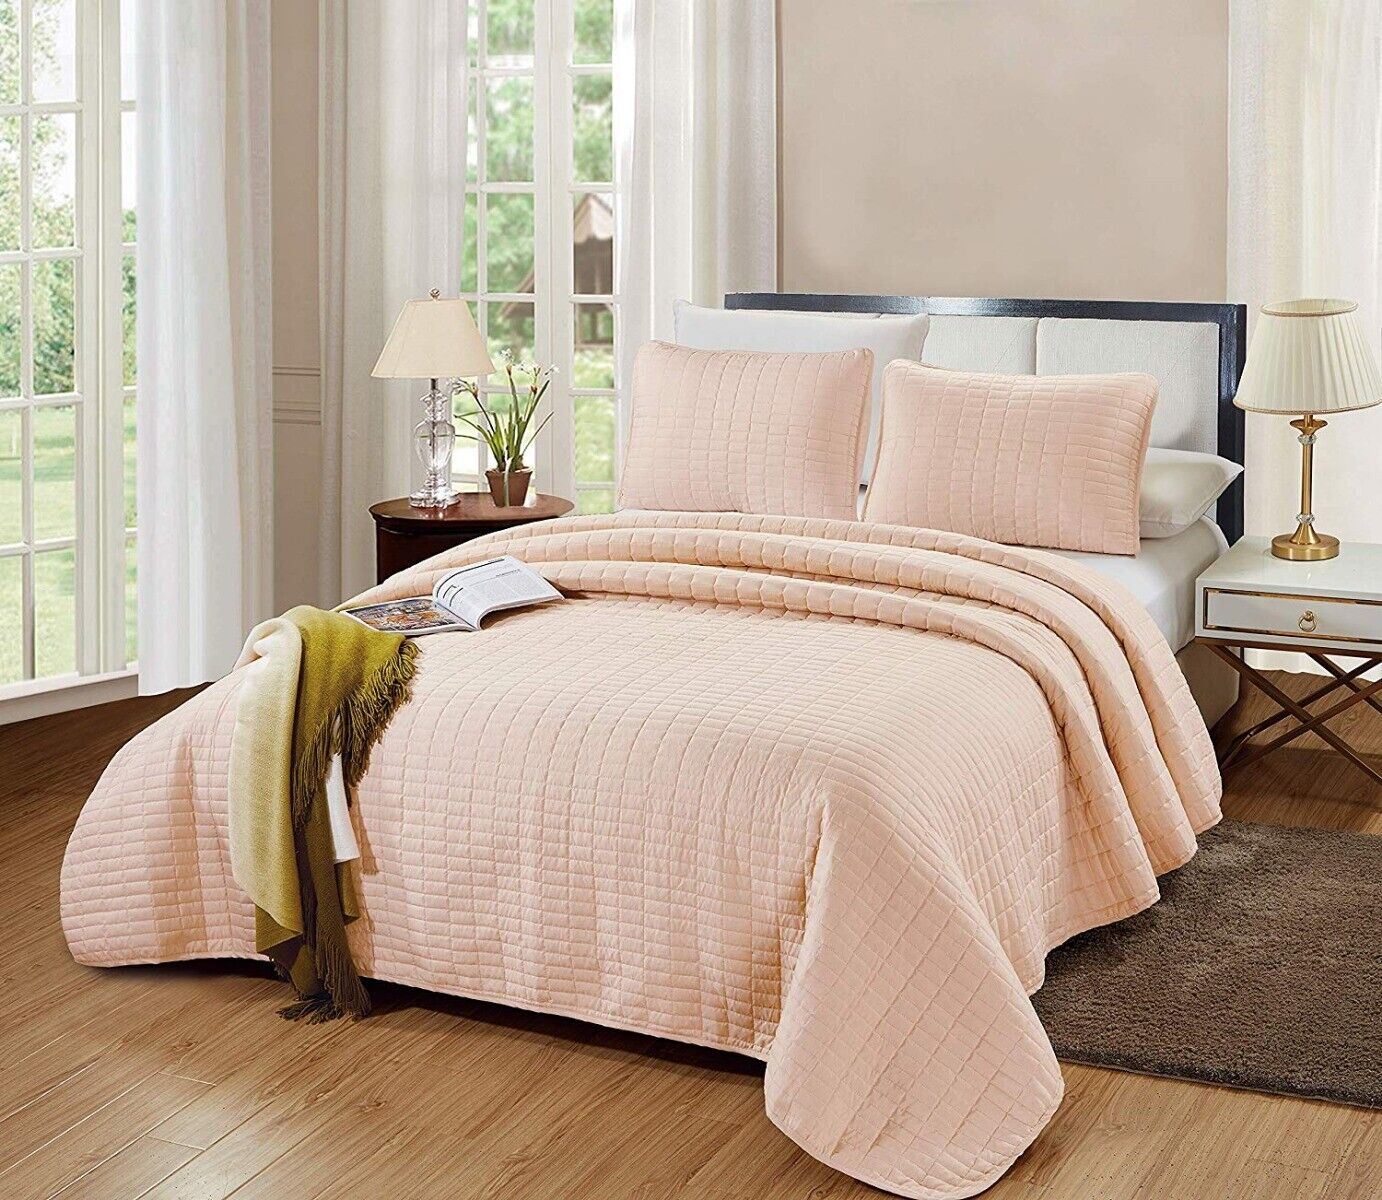 3 Pc Queen / Full Catena Quilt Set Blush Pink Bedspread Micr